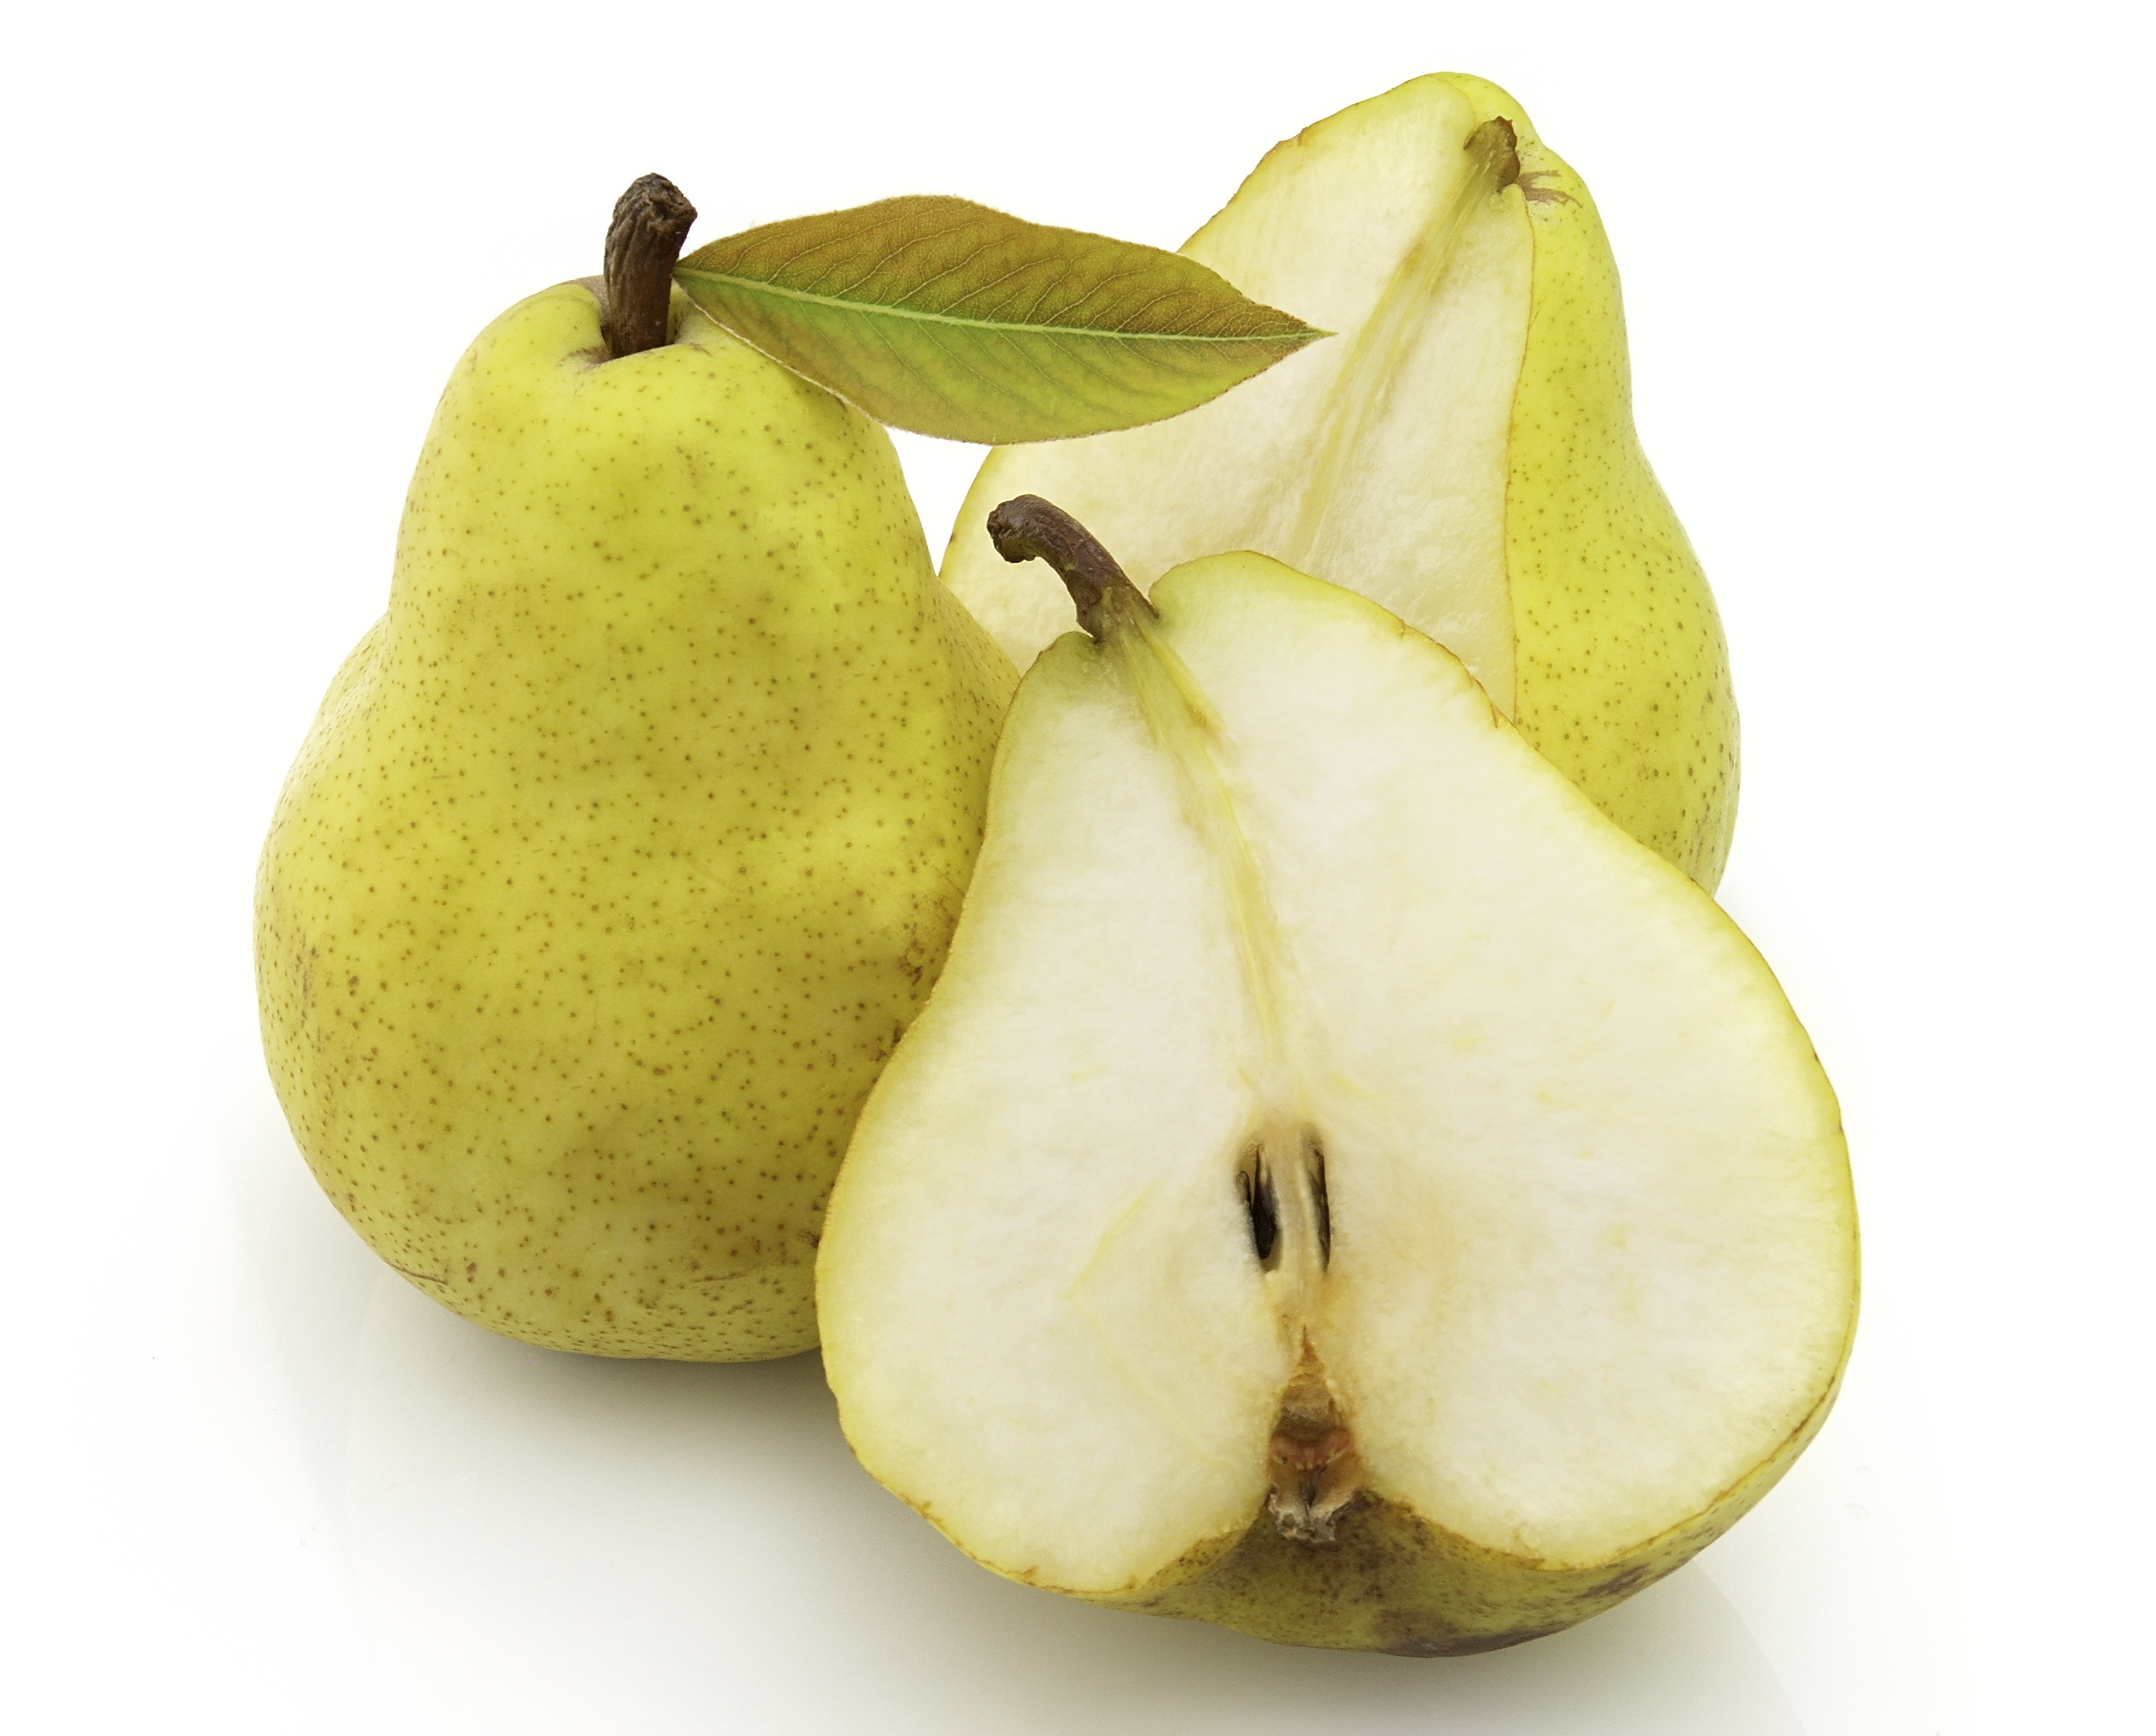 Sliced pear photo